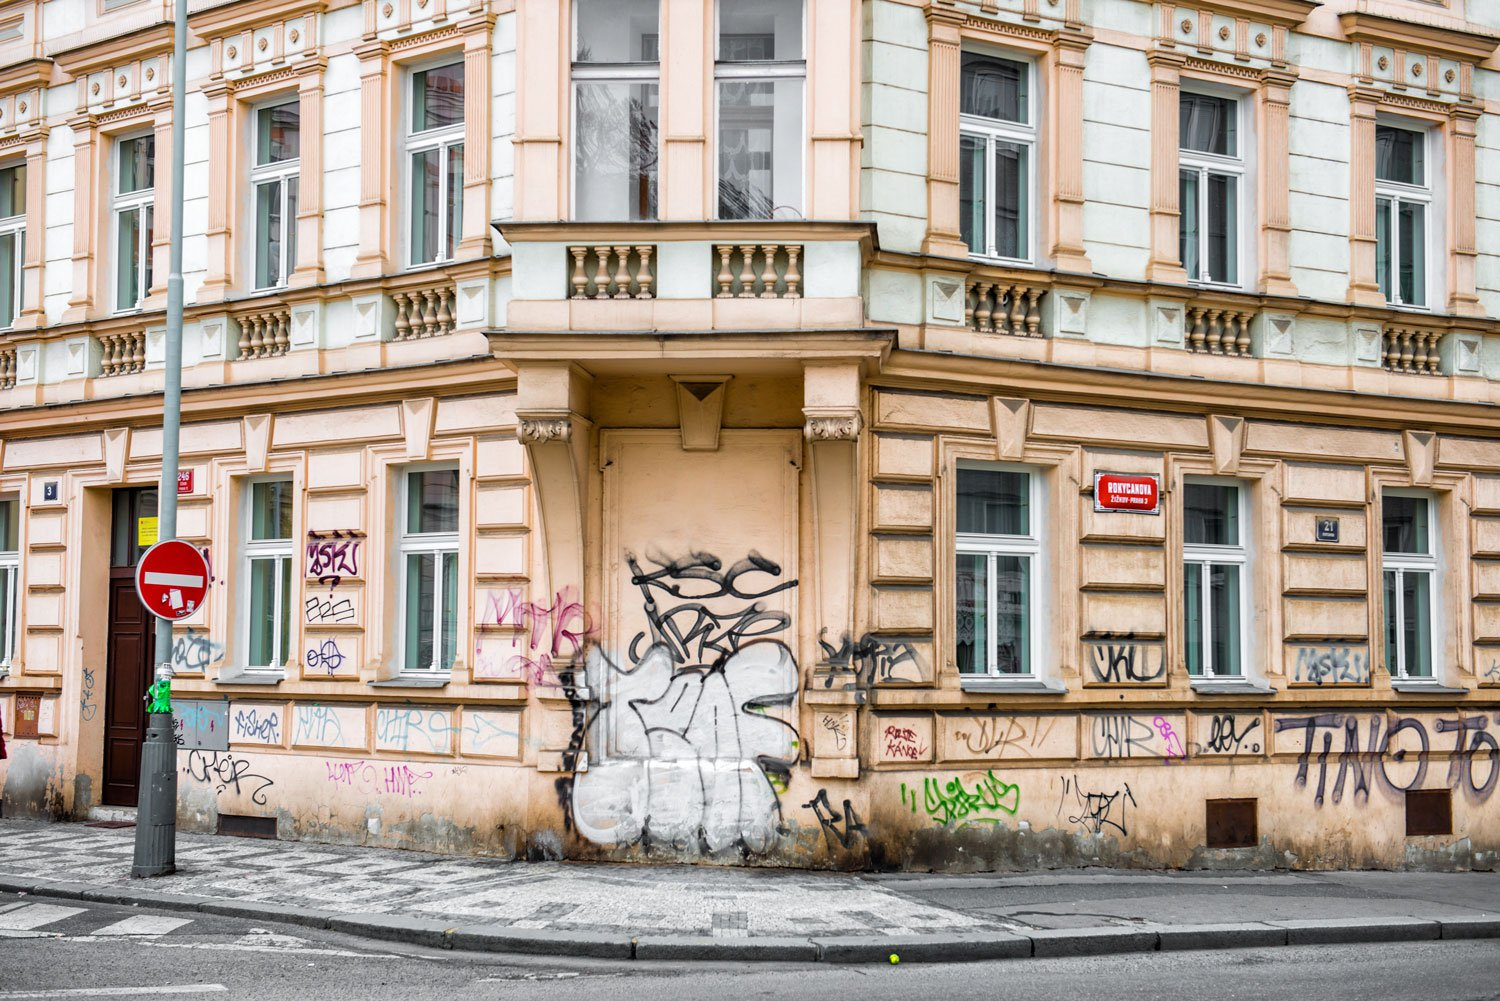 Graffitied building